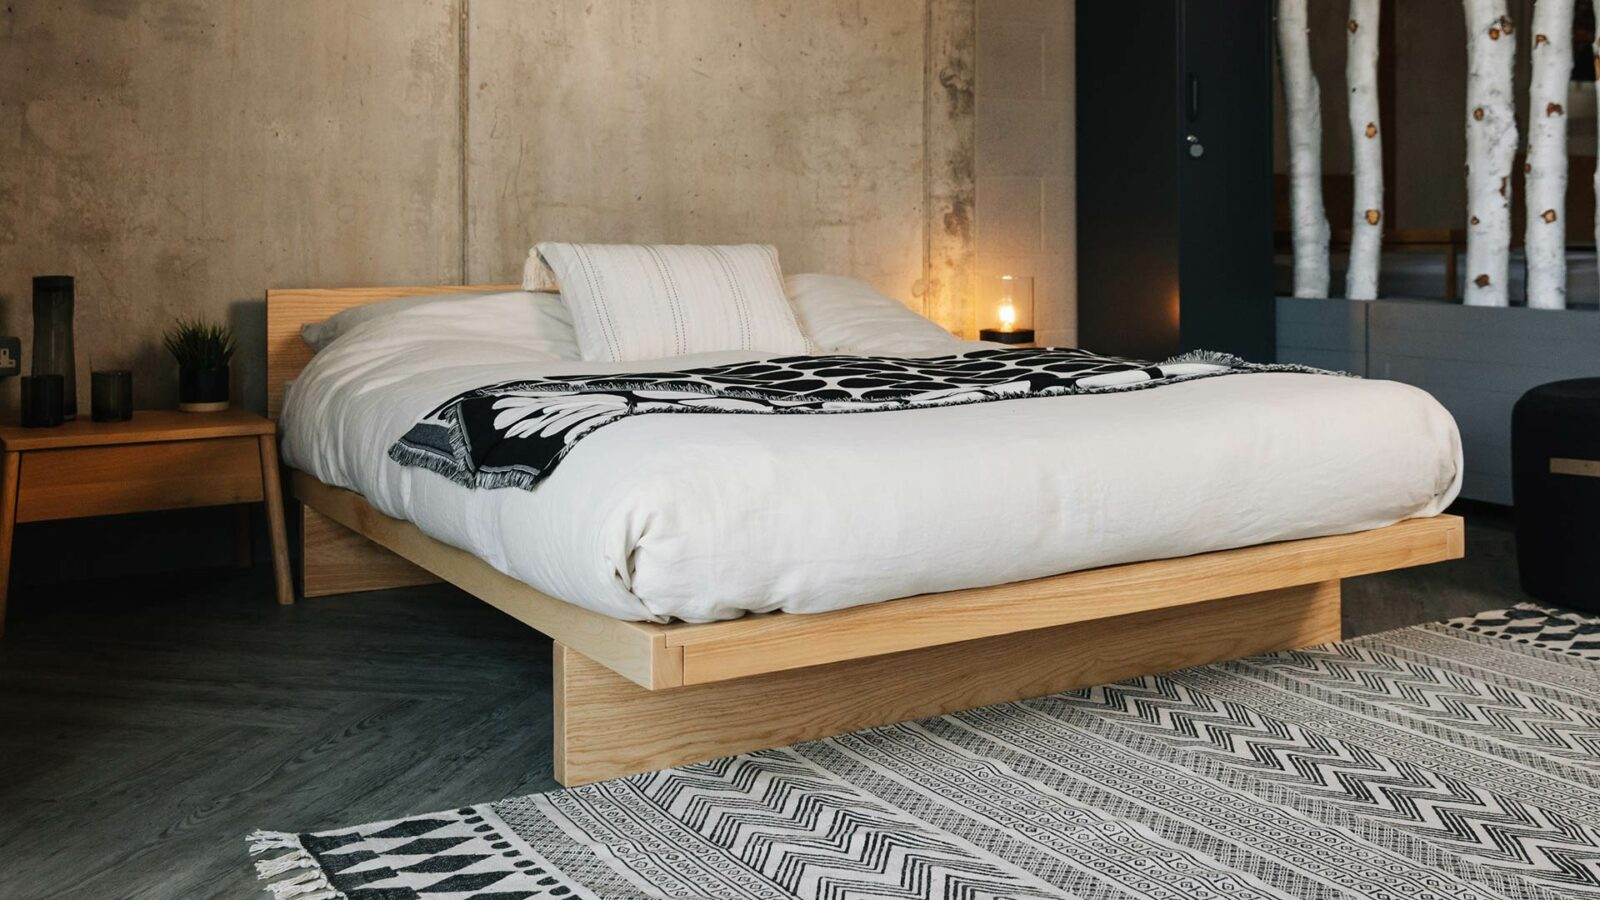 Solid Ash Kyoto Bed Frame with Headboard in a modern monochrome Japanese style setting